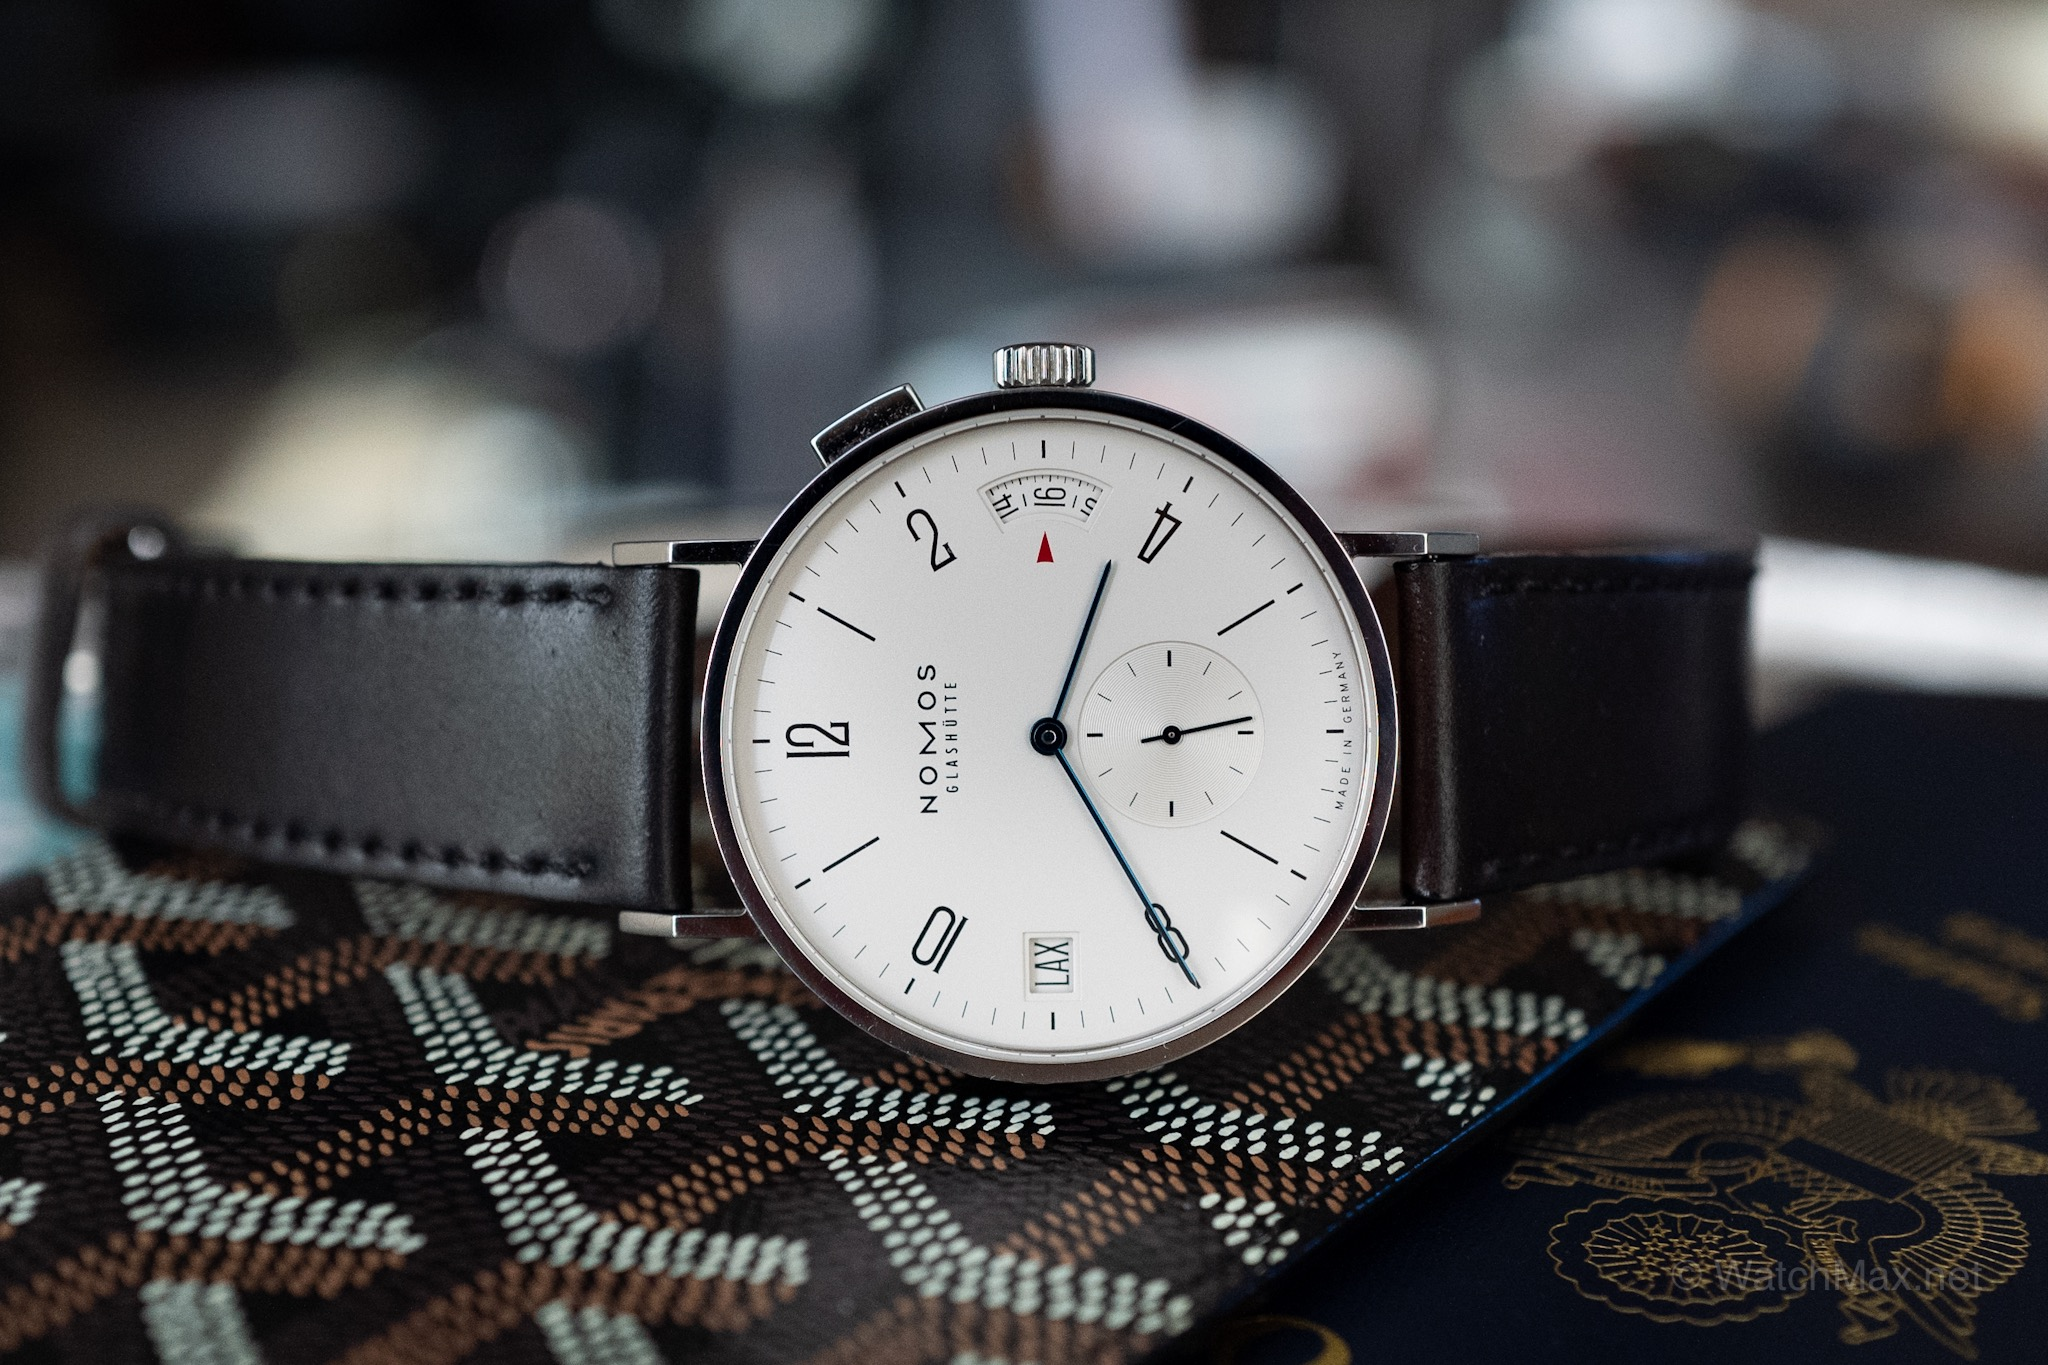 Thoughts on the NOMOS Tangomat GMT - I recently took a business trip over Europe and brought along with me the NOMOS Tangomat GMT. What are my thoughts on this classically-designed Bauhaus watch? Read more